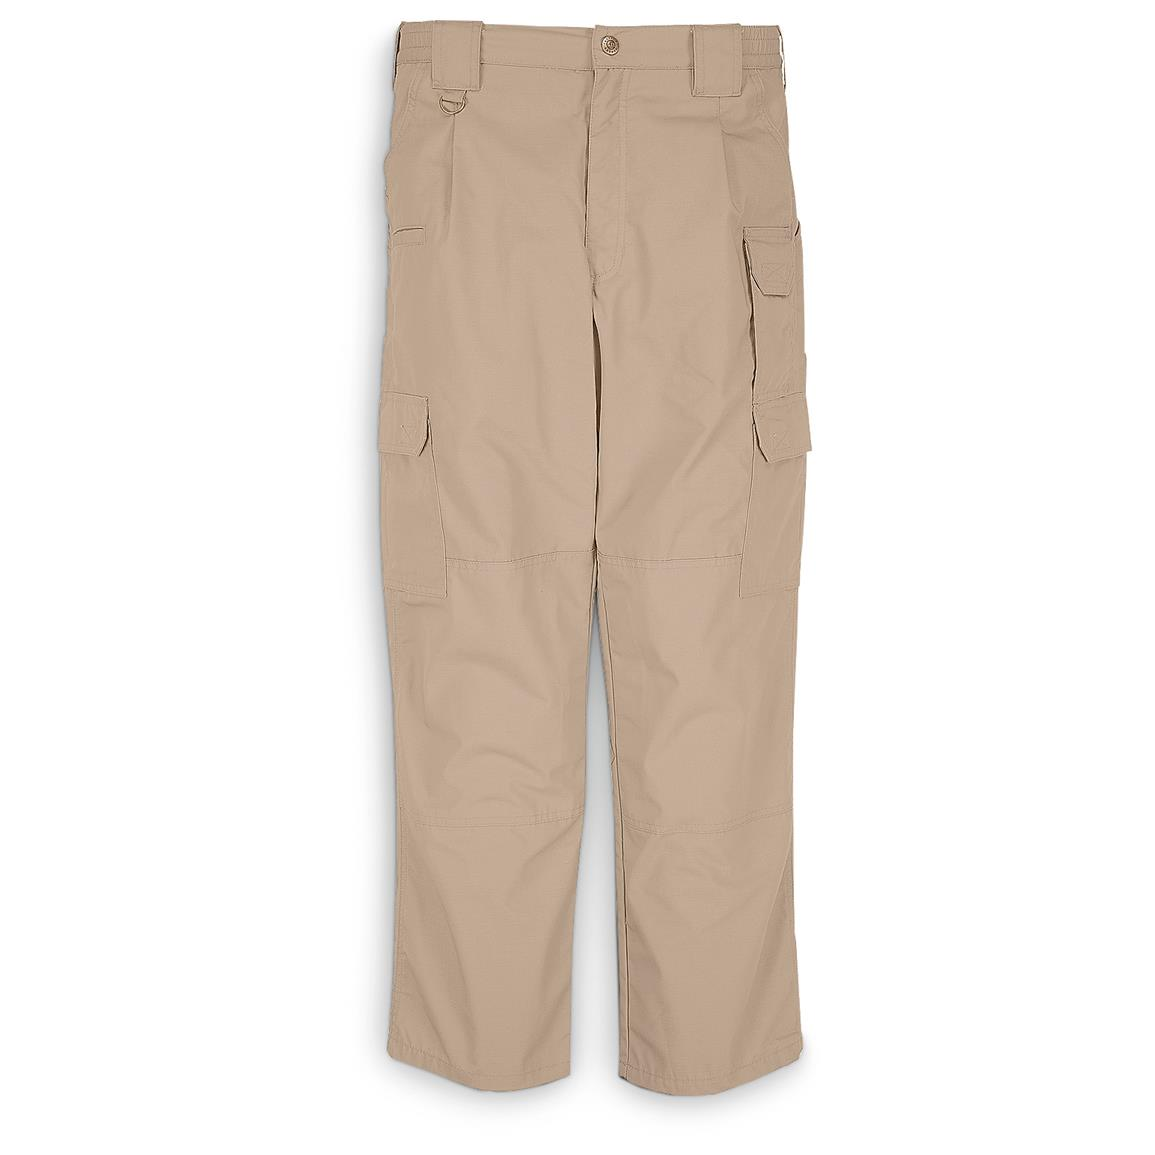 5.11 Men's Tactical Taclite Pro Pants, Stone